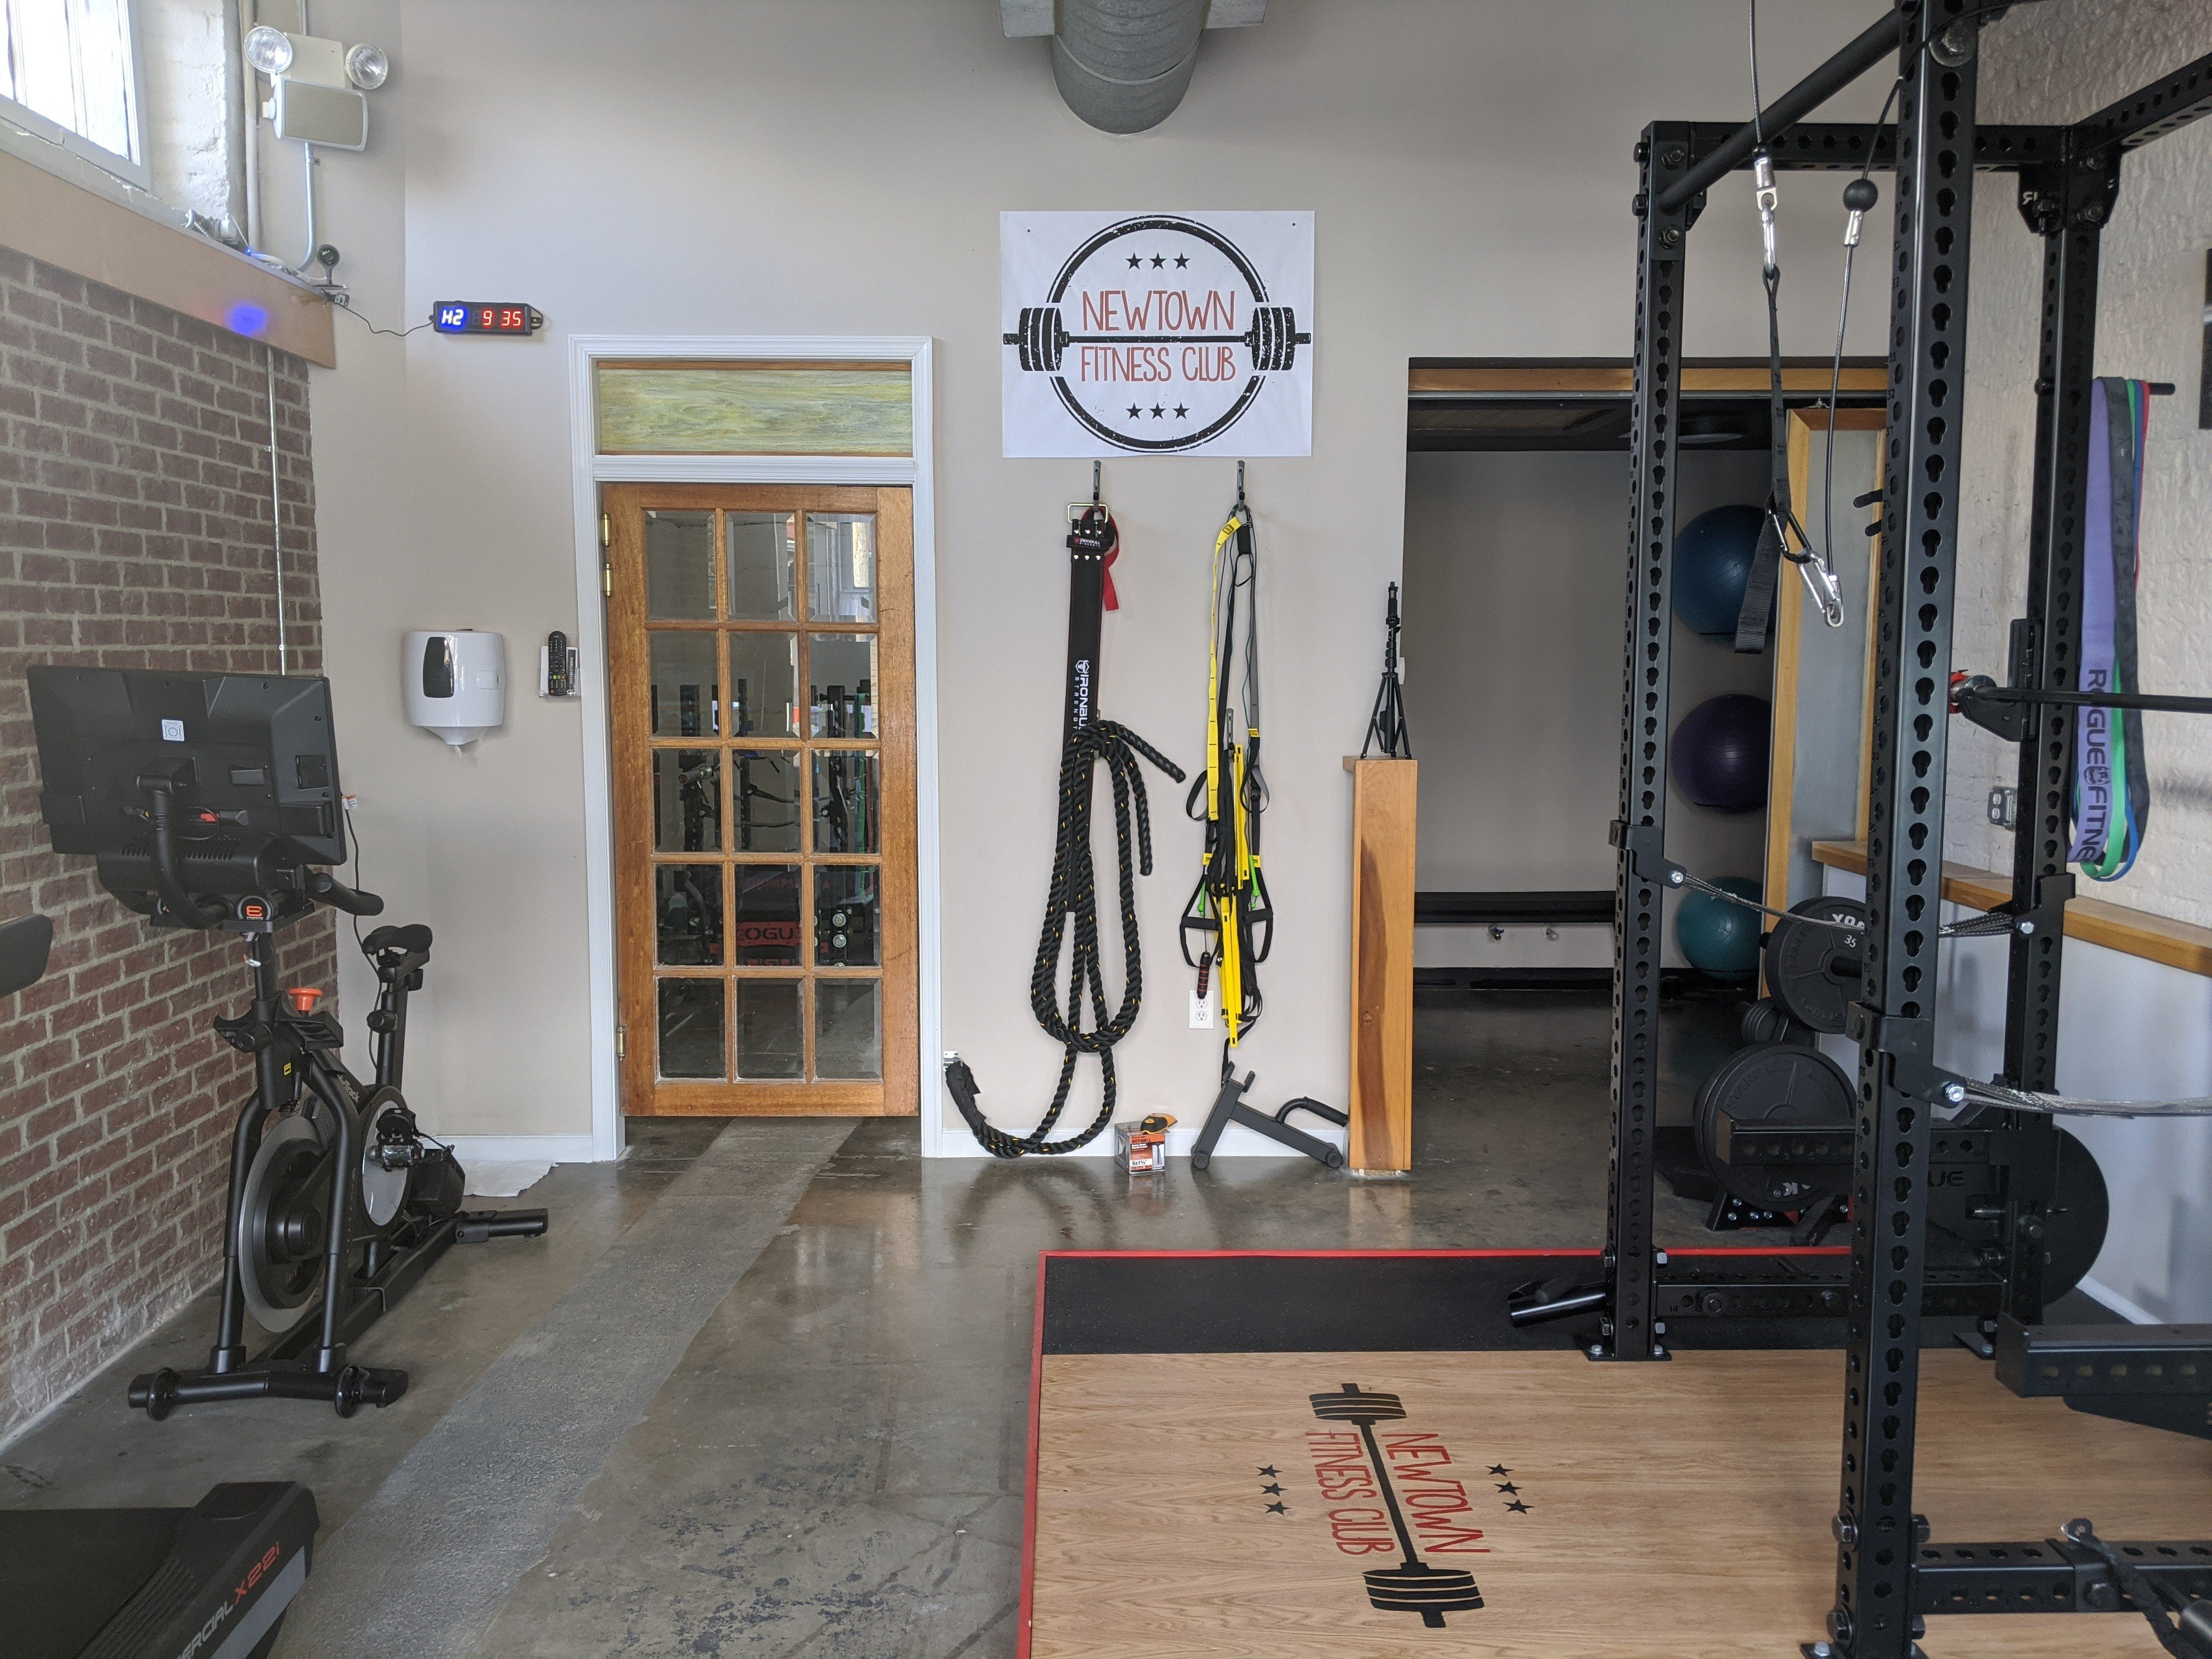 Back wall of gym